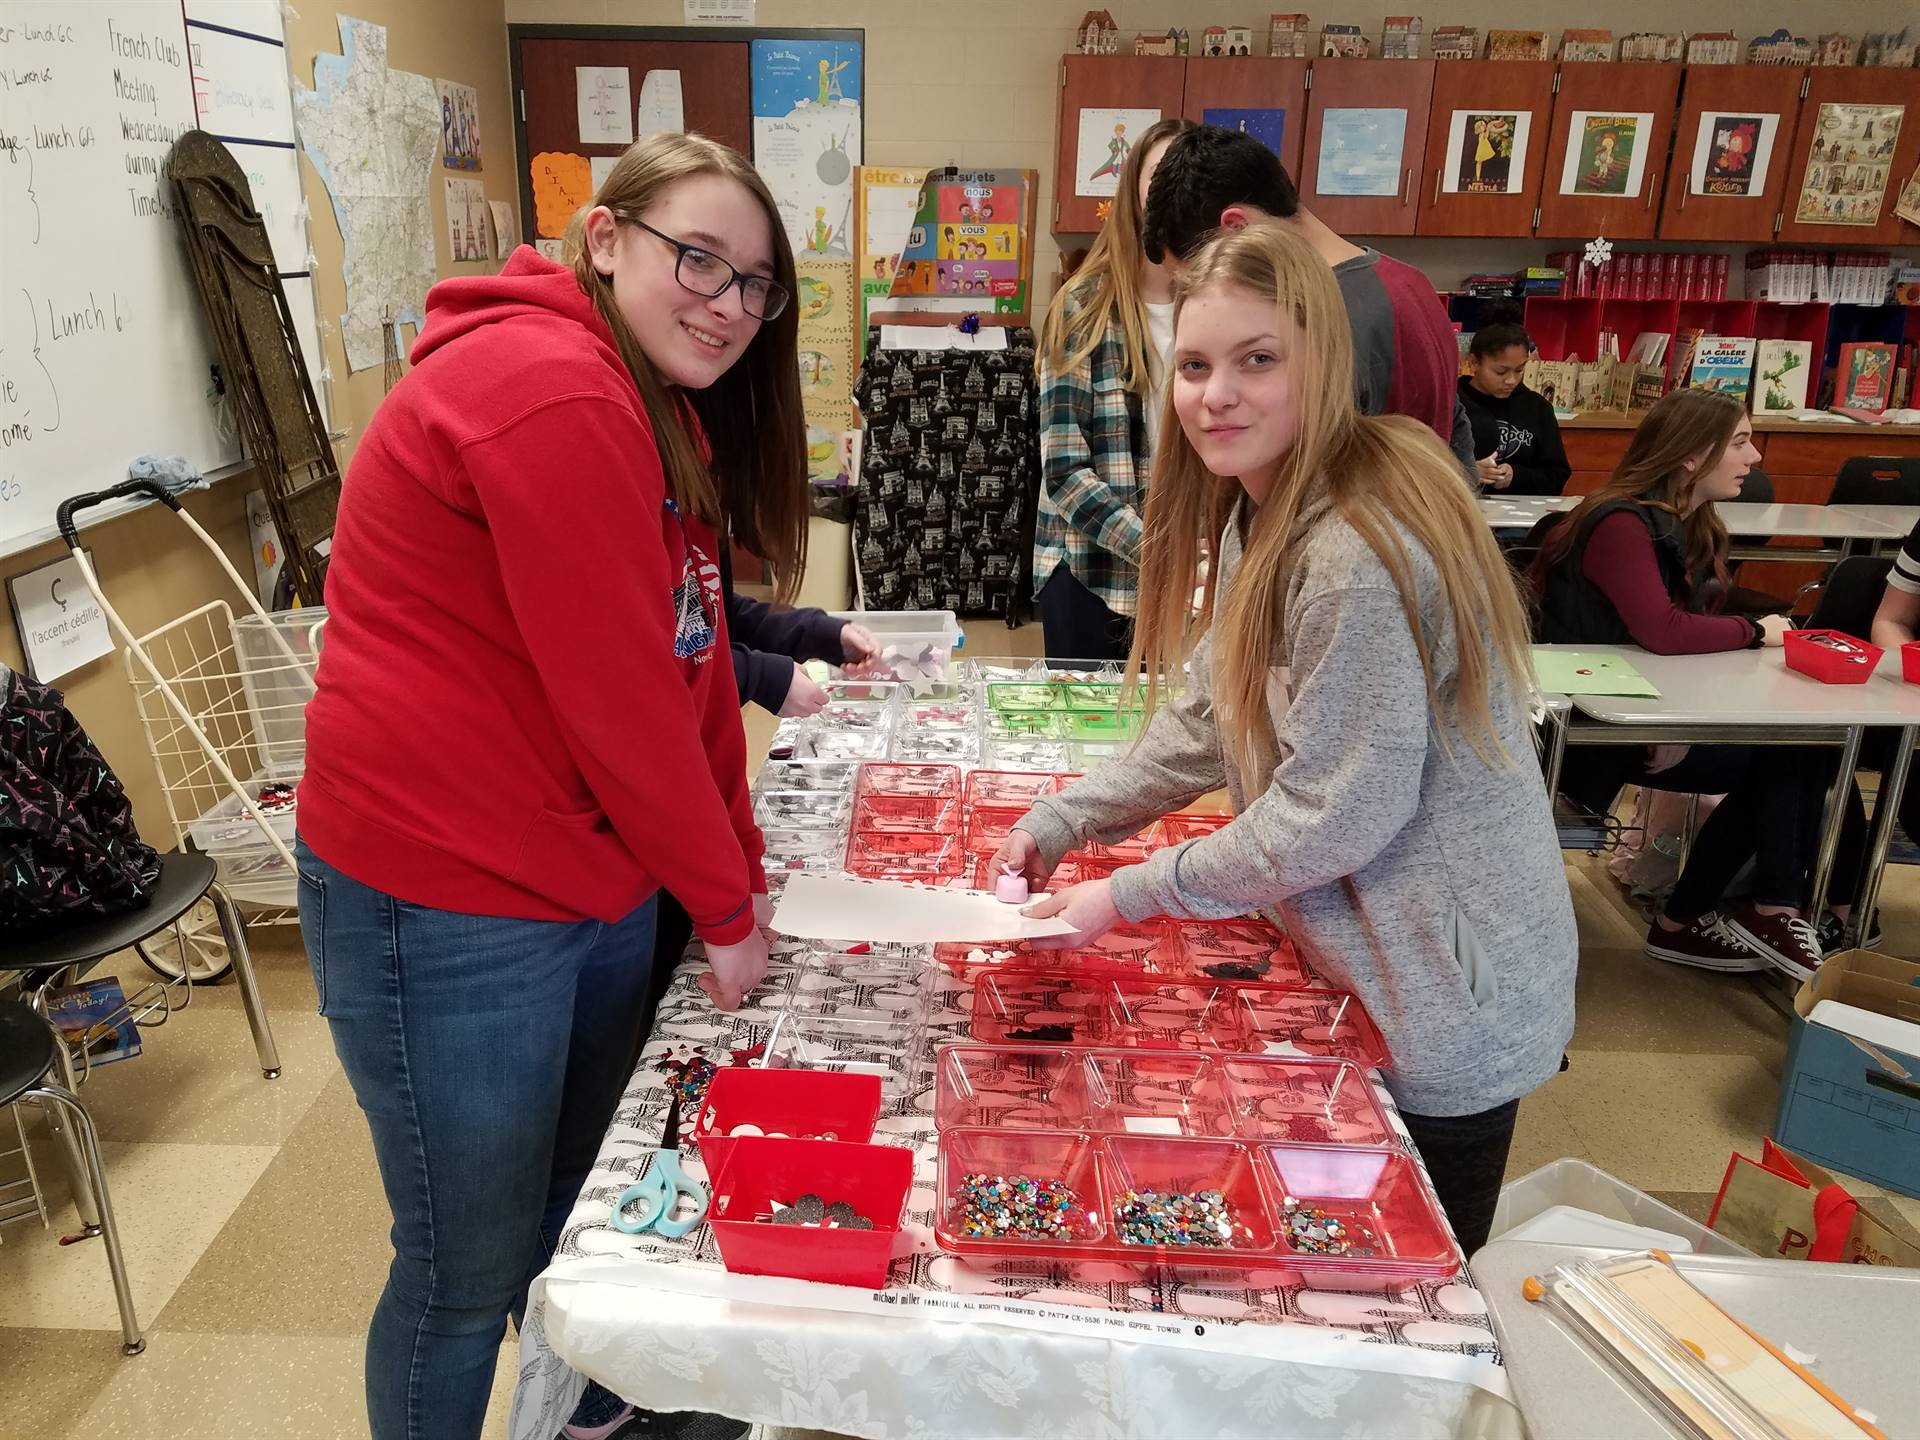 French Students Handcrafting Magnets to Fund Raise for Orphans in Haiti